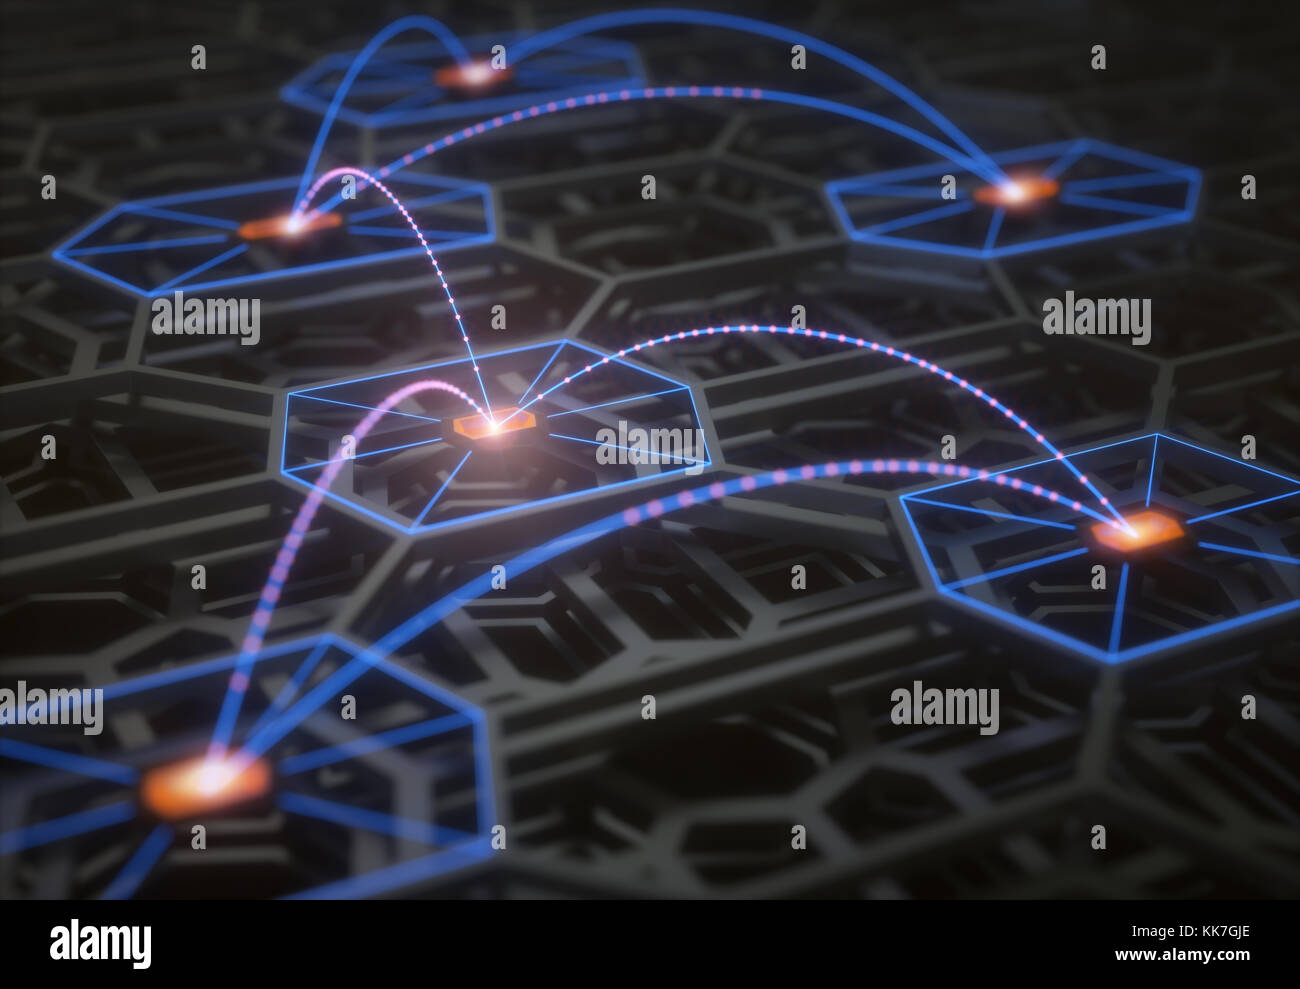 3D illustration. Conceptual image of a complex and abstract technological structure with connections and data transfer. - Stock Image